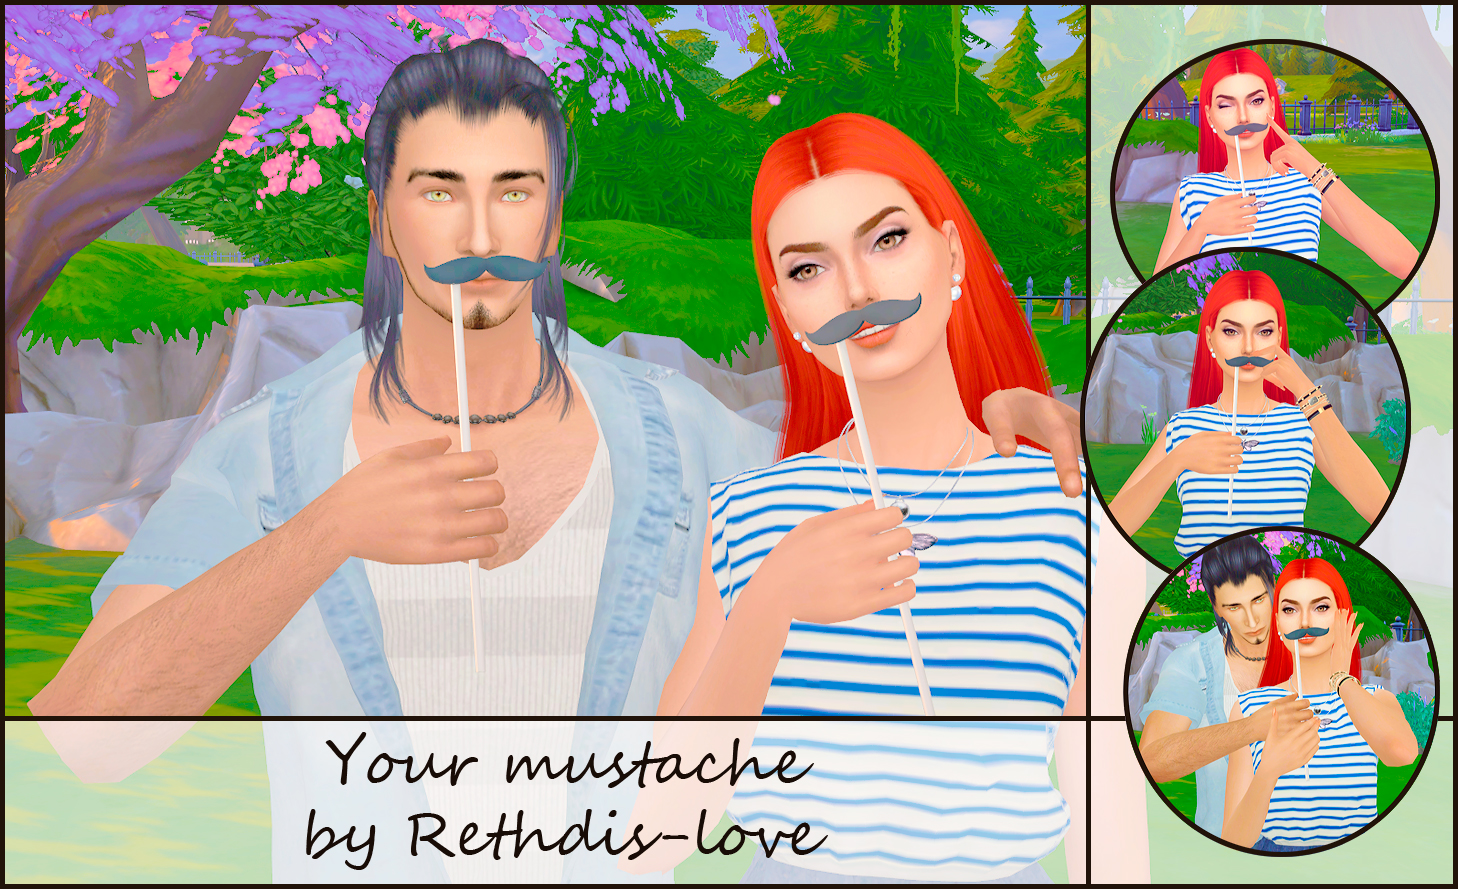 [RL]Your mustache by Rethdis-love